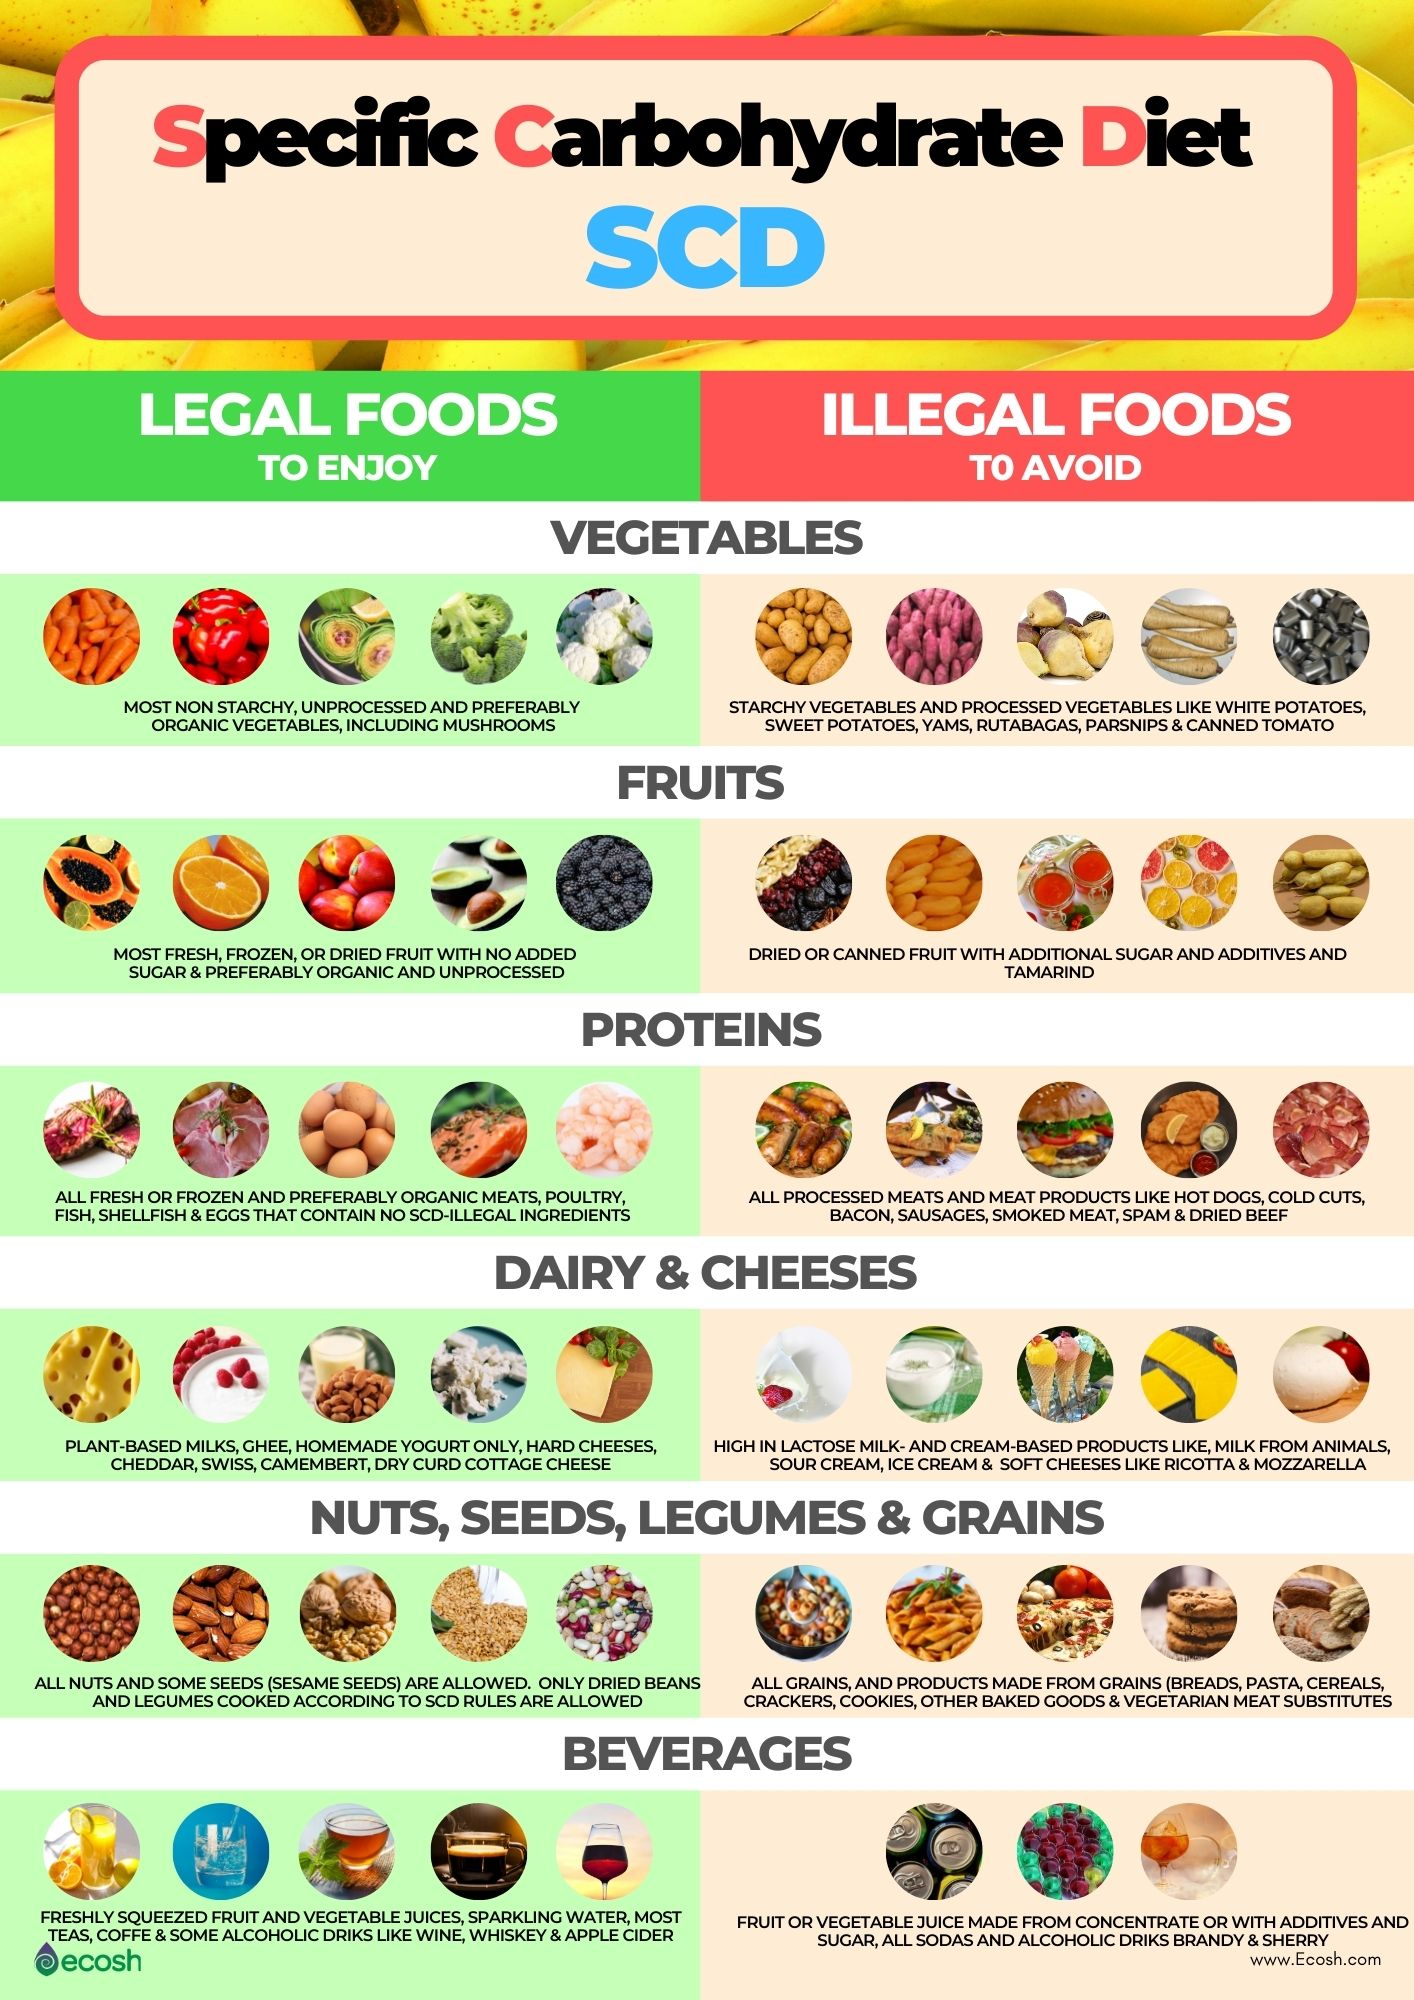 Specific_Carbohydrate_Diet_SCD_Diet_Legal_Foods_SCD_Diet_Illegal_Foods_SCD_Diet_Allowed_Foods_List_SCD_Diet_Not_Allowed_Foods_List